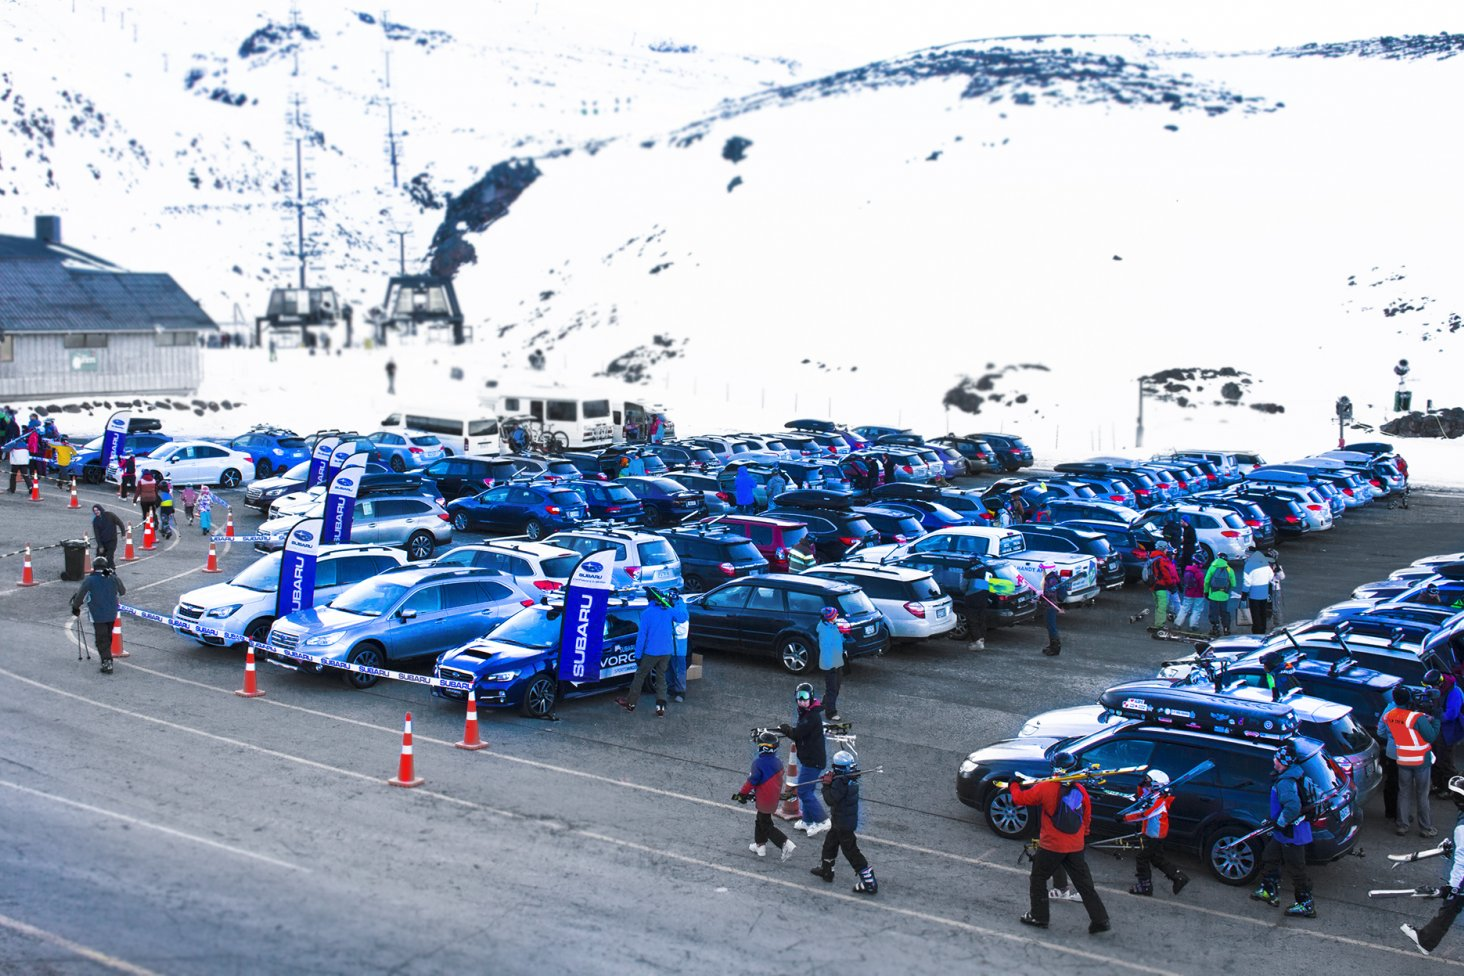 These images were taken at the 2016 Subaru Top Weekend at Turoa ski field.